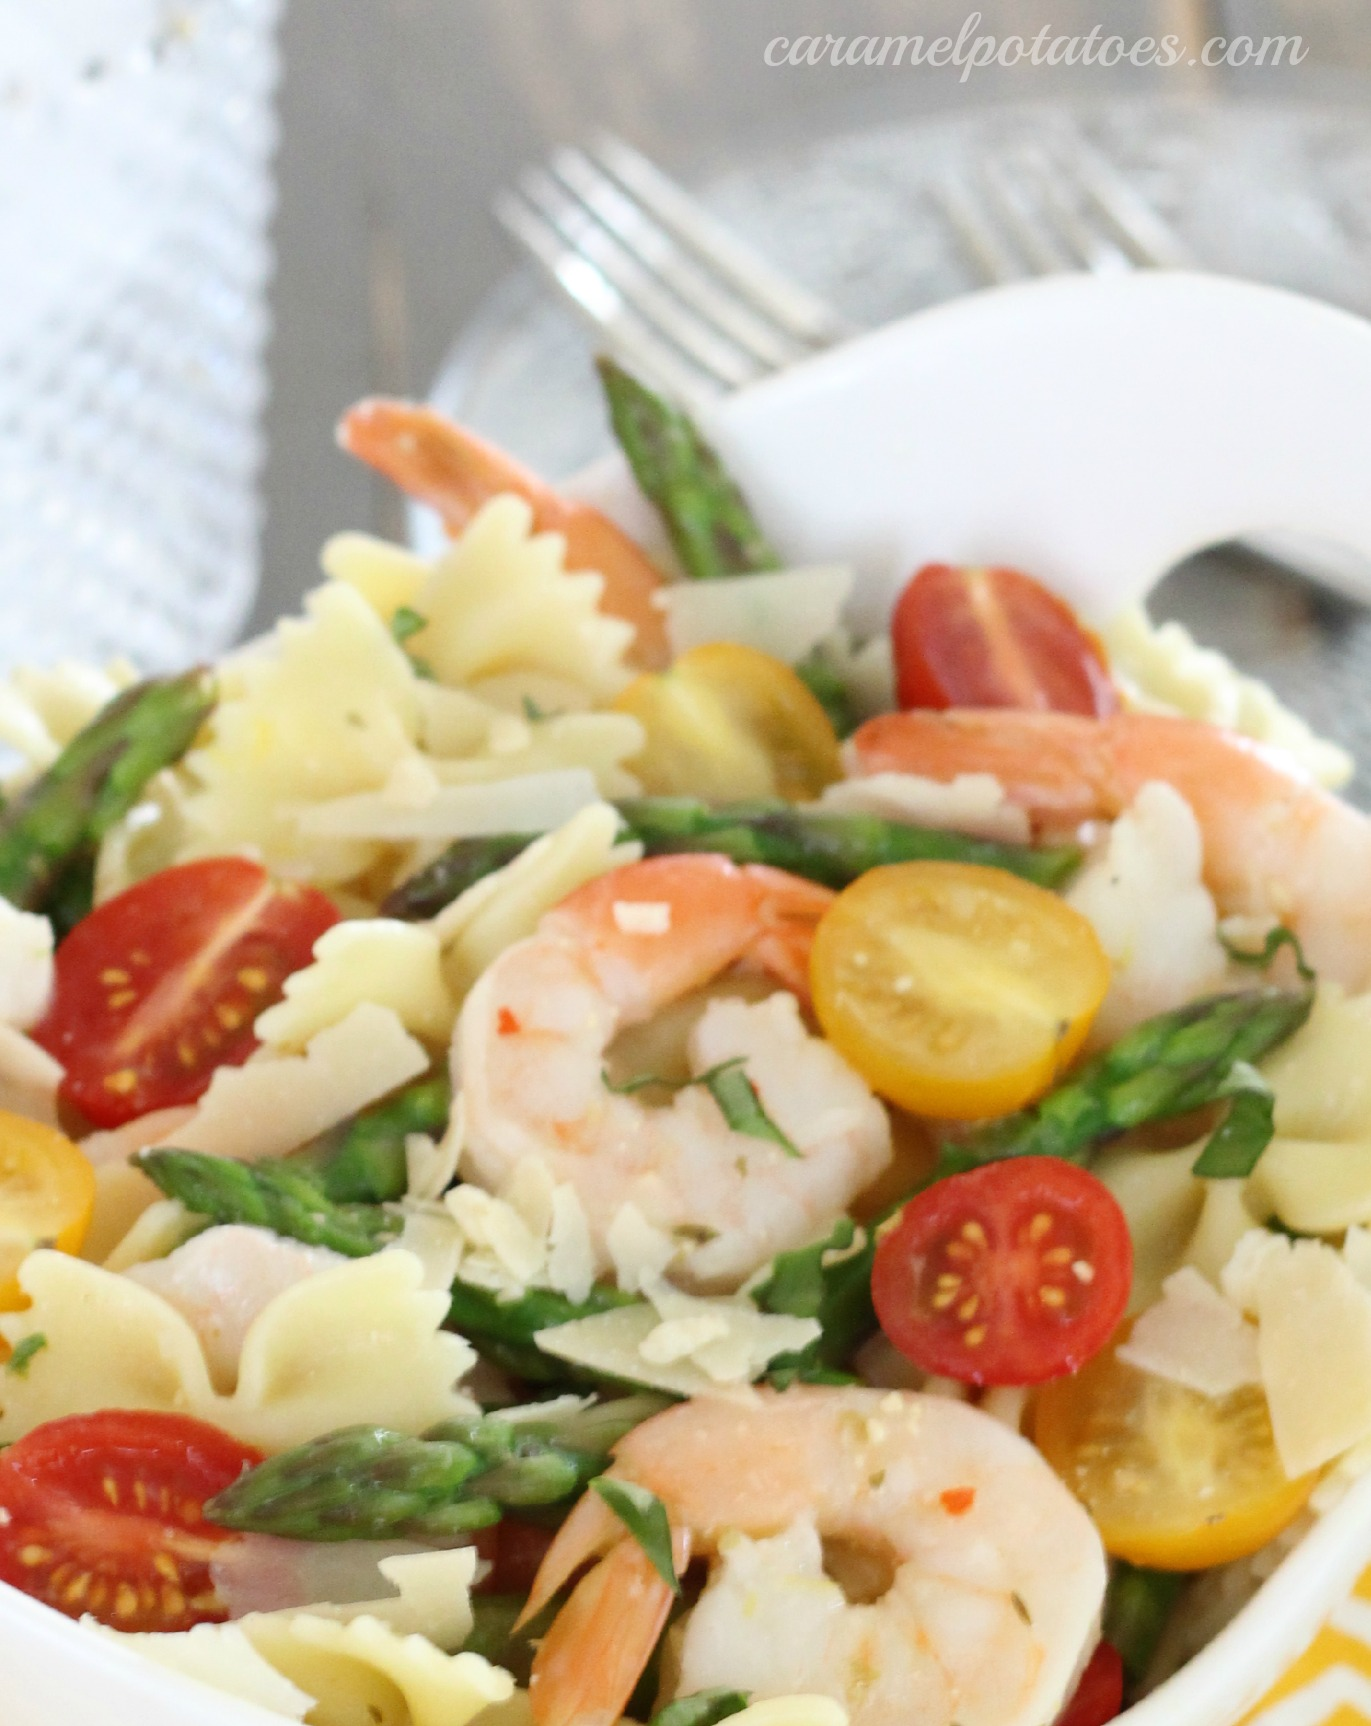 Caramel Potatoes » Shrimp Pasta Salad